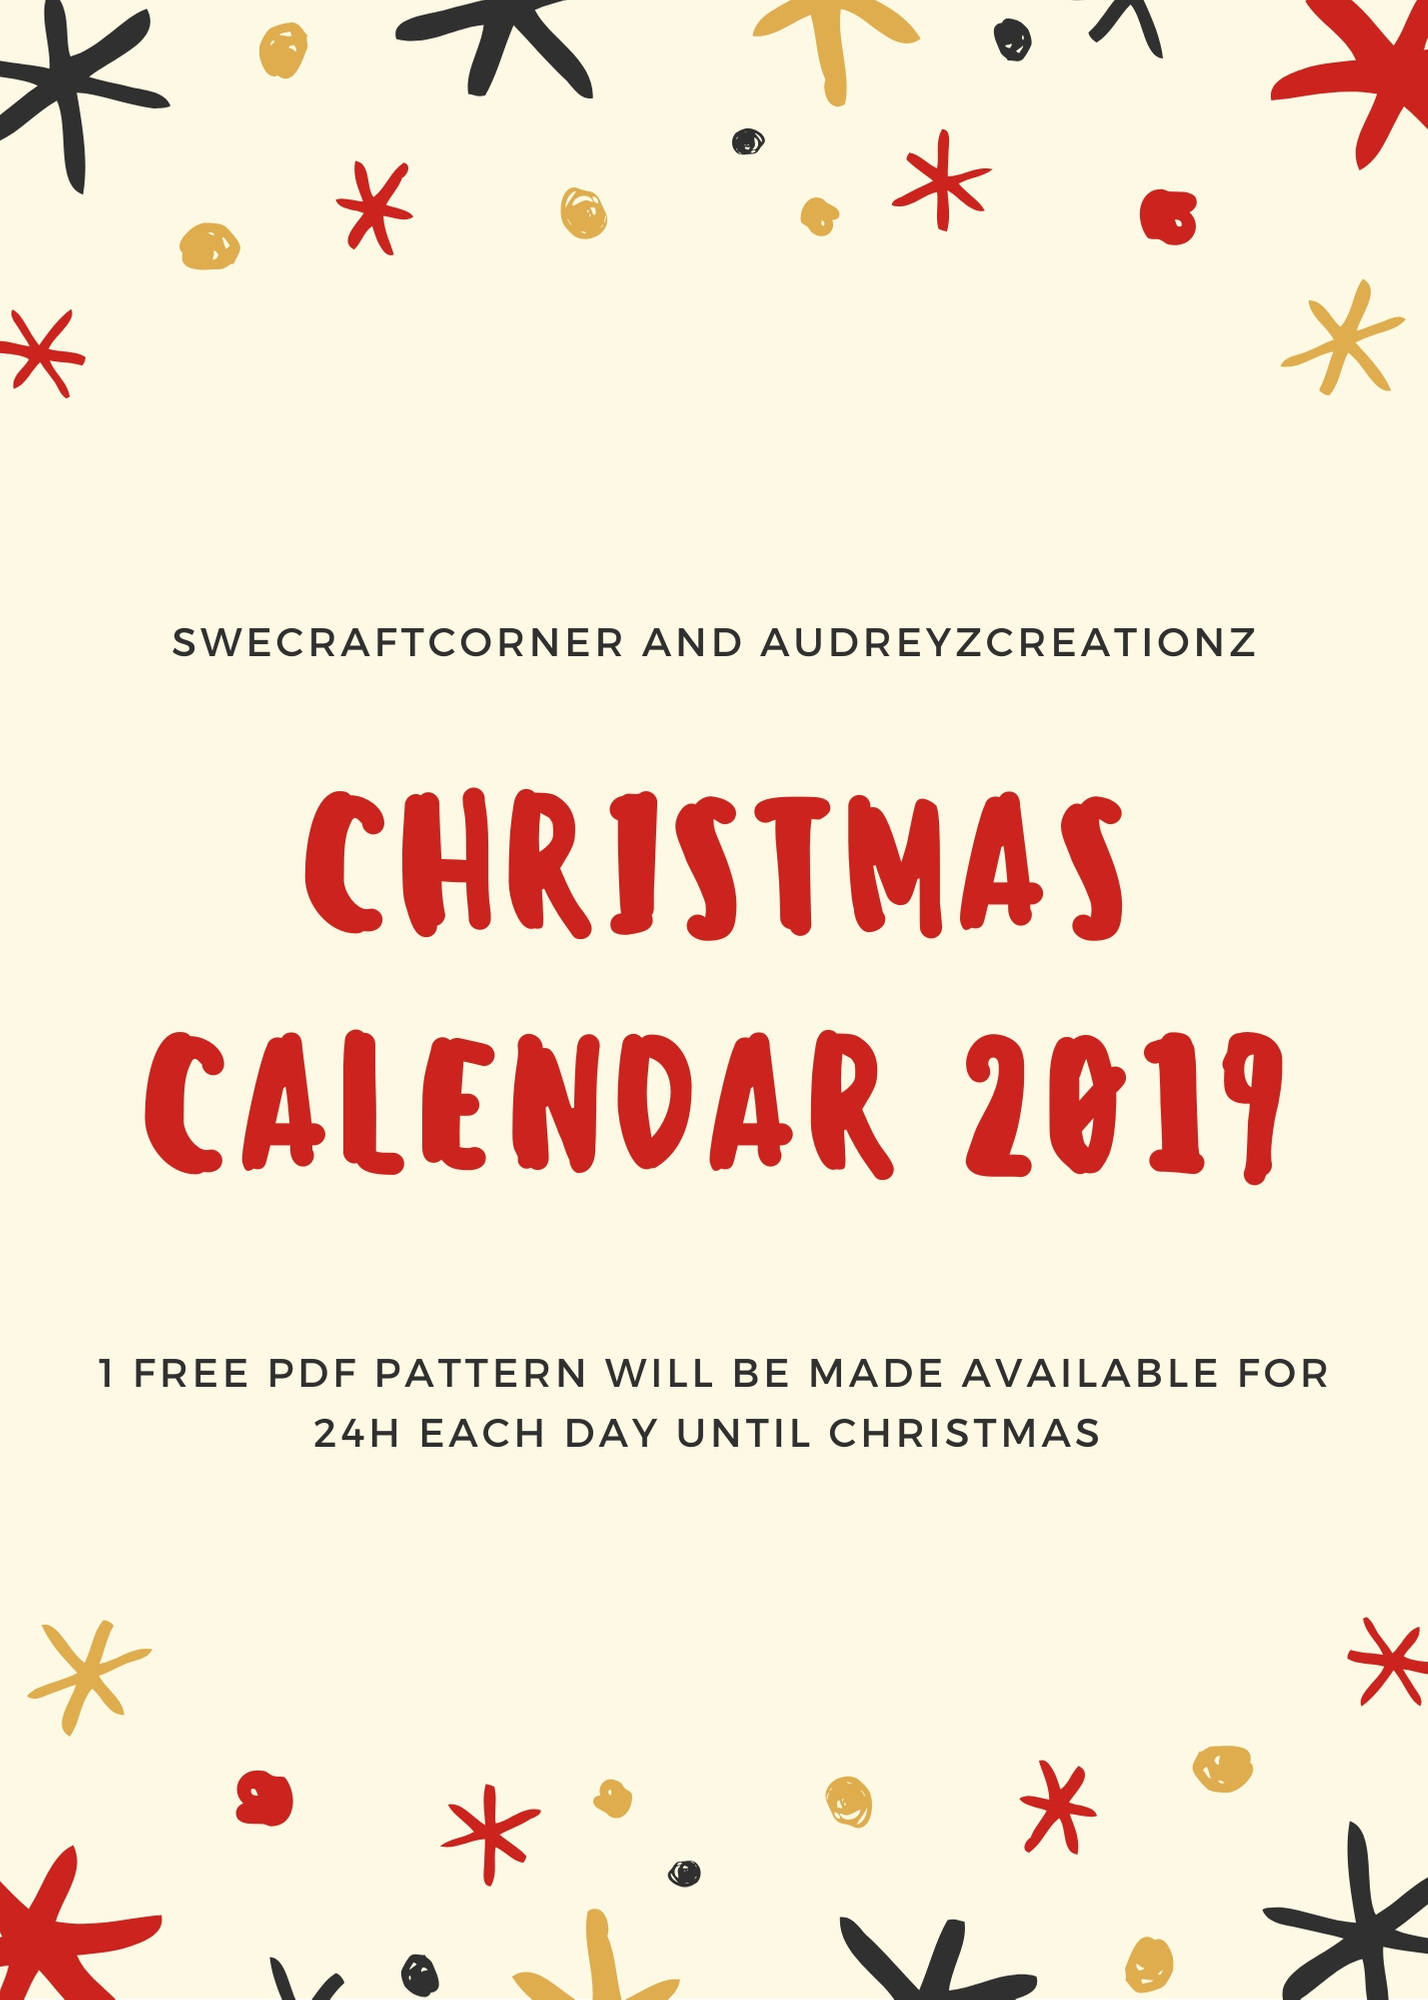 Christmas calendar 2019 – FREE PDF DOWNLOADS